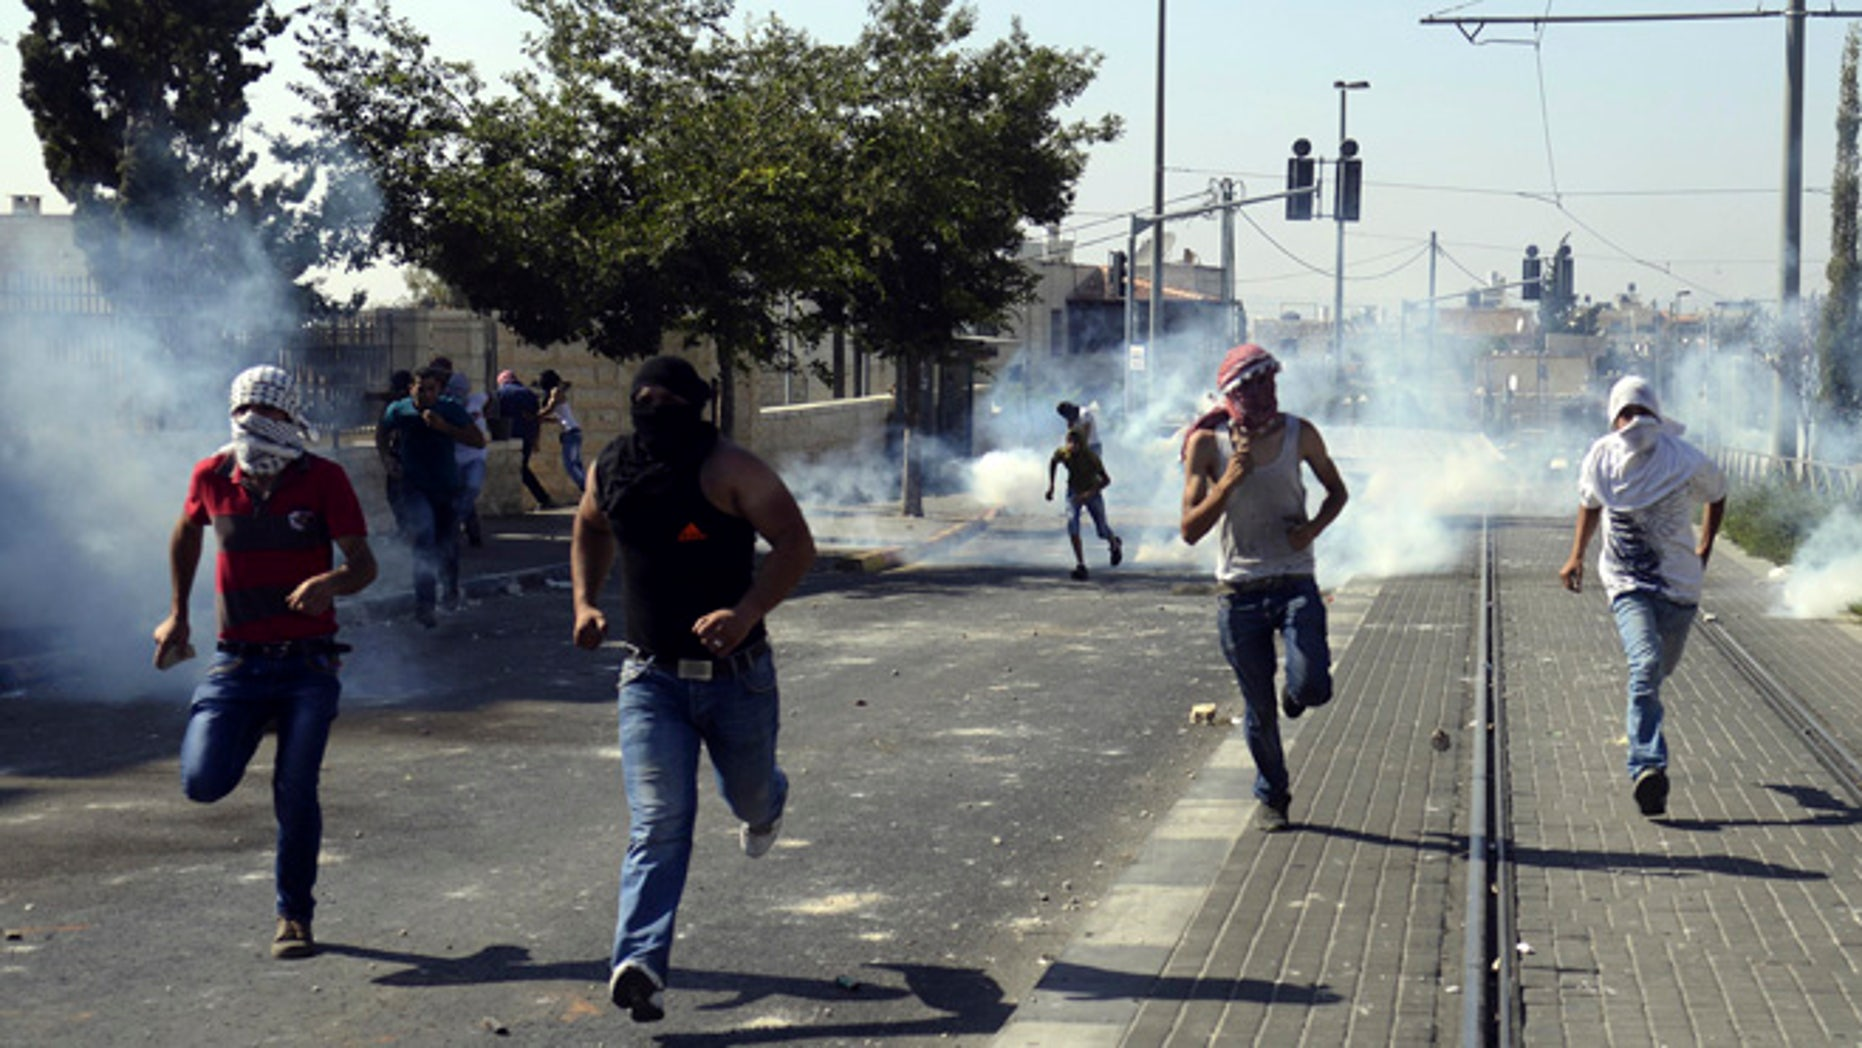 July 4, 2014: Palestinians run away from tear gas as they clash with Israeli security forces during the funeral of 16-year-old Mohammed Abu Khdeir in Jerusalem.